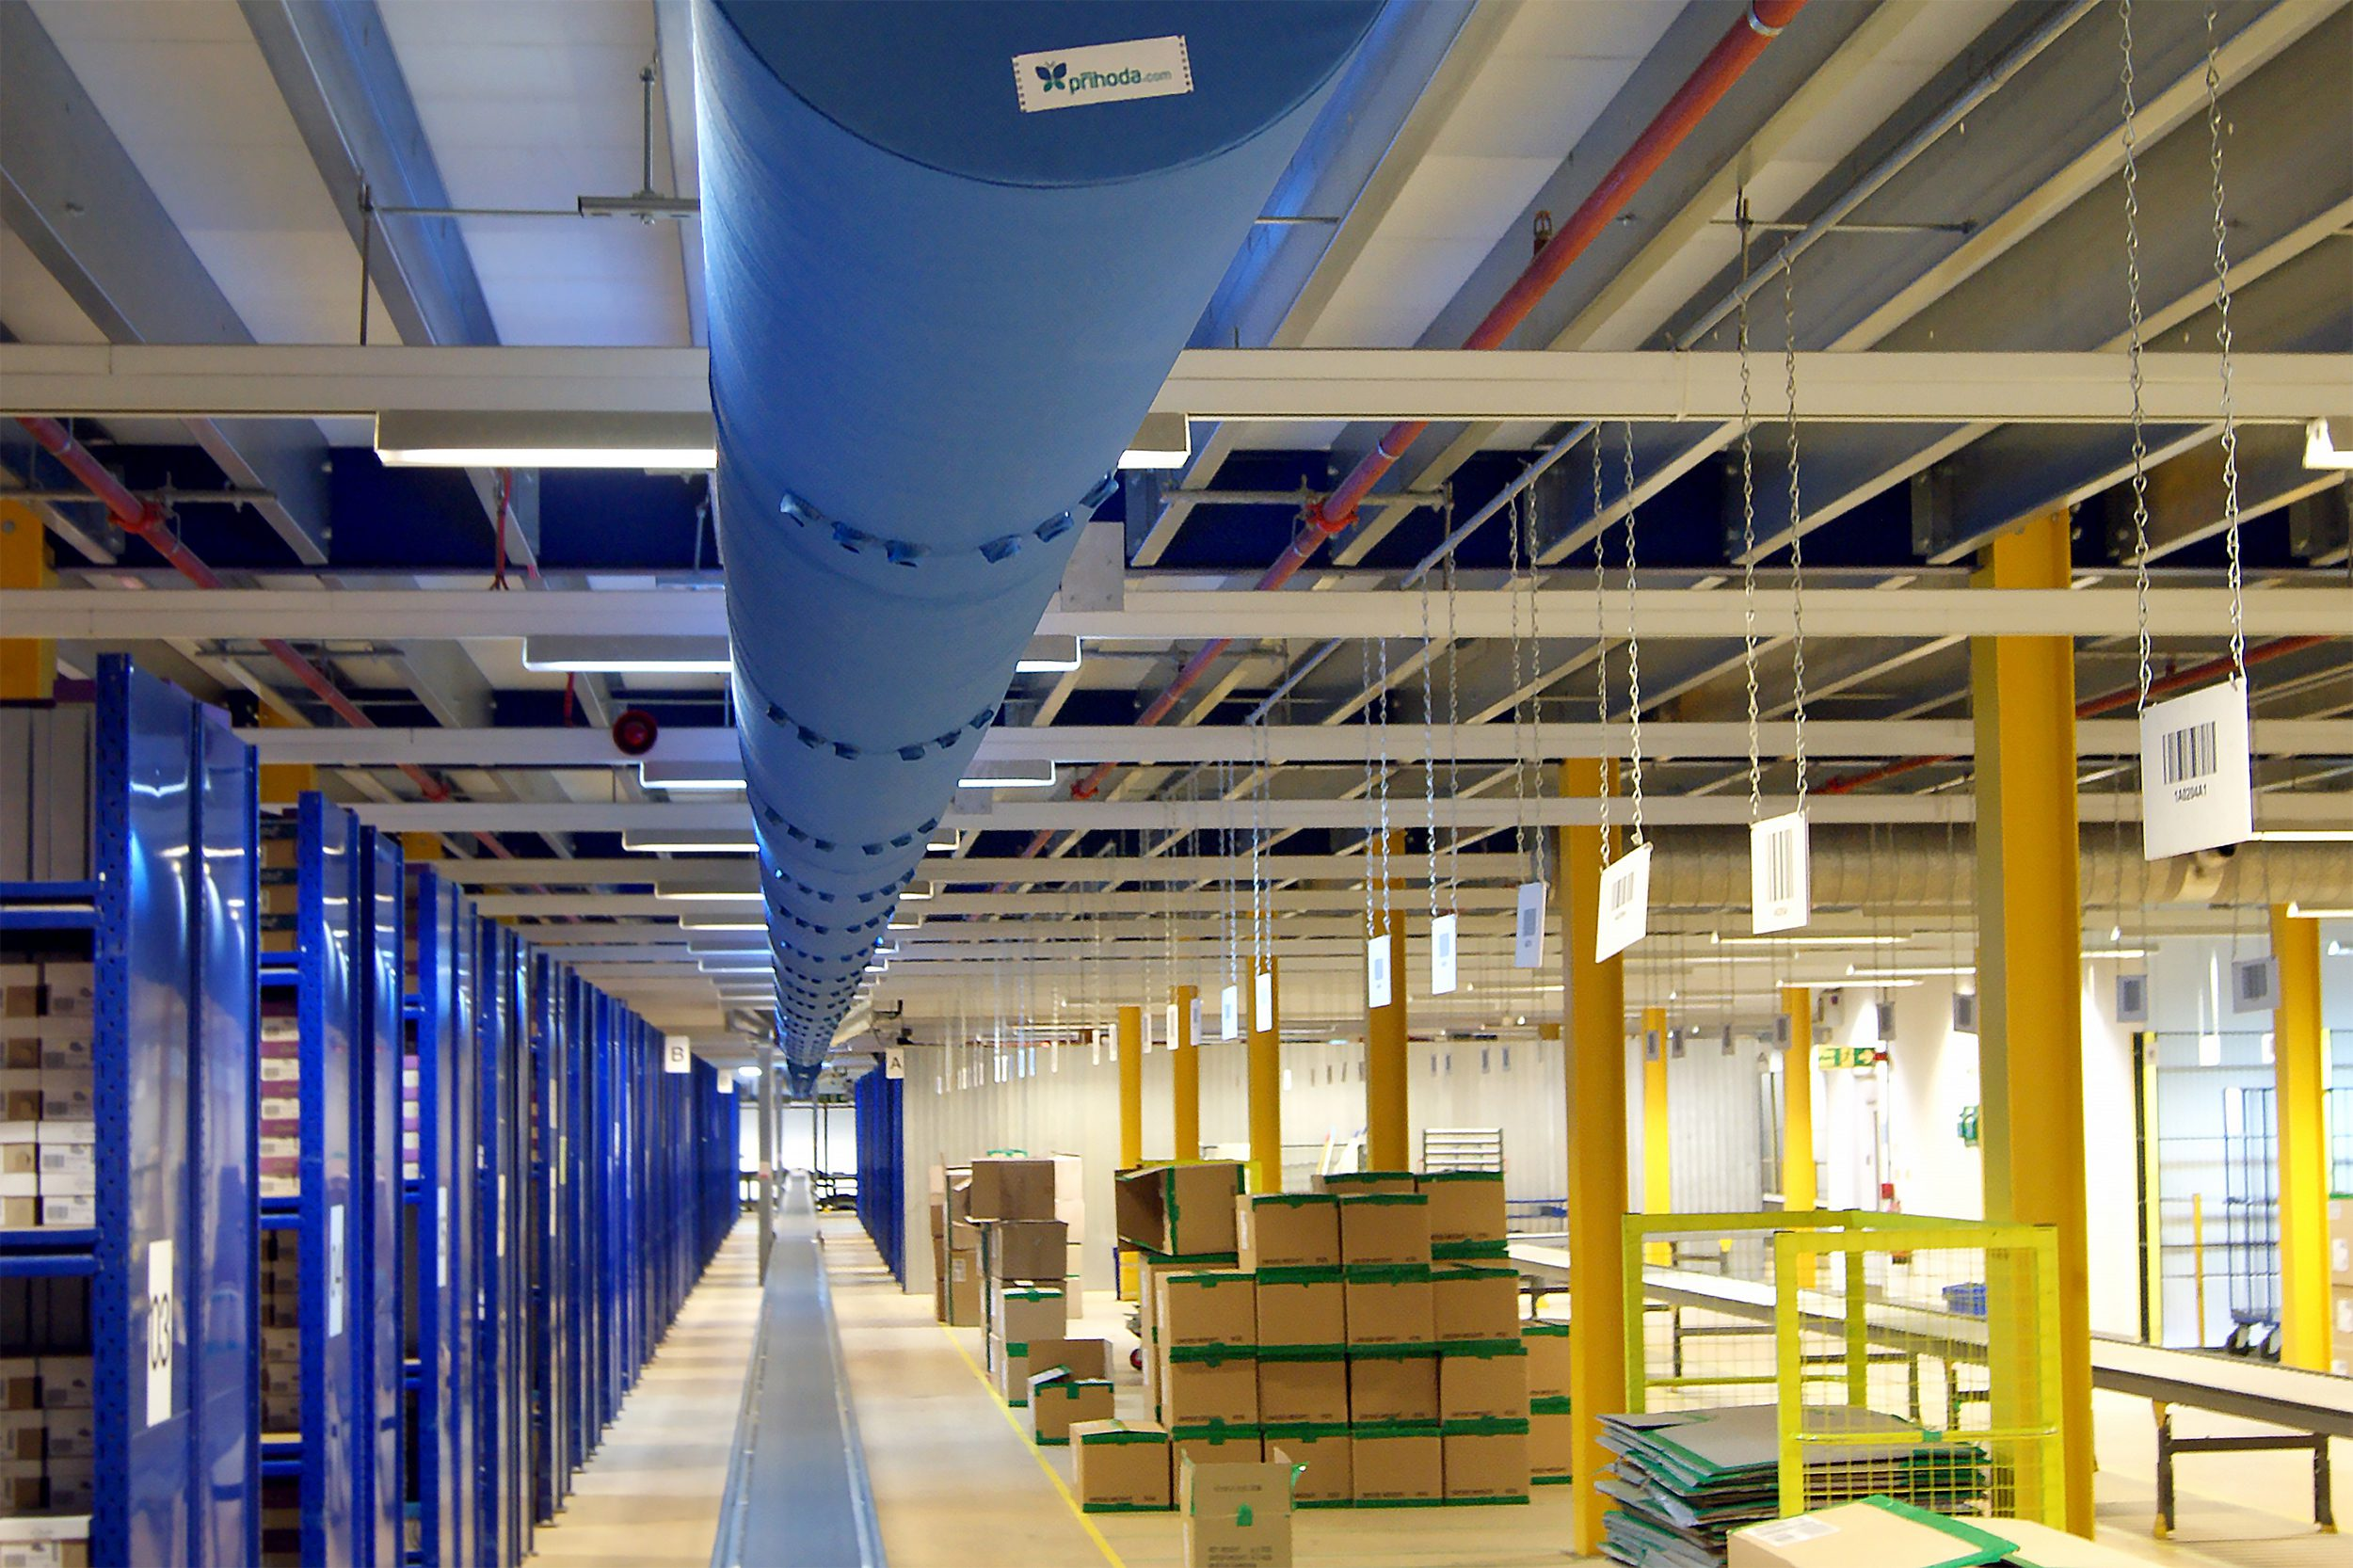 Blue fabric ducting in a warehouse